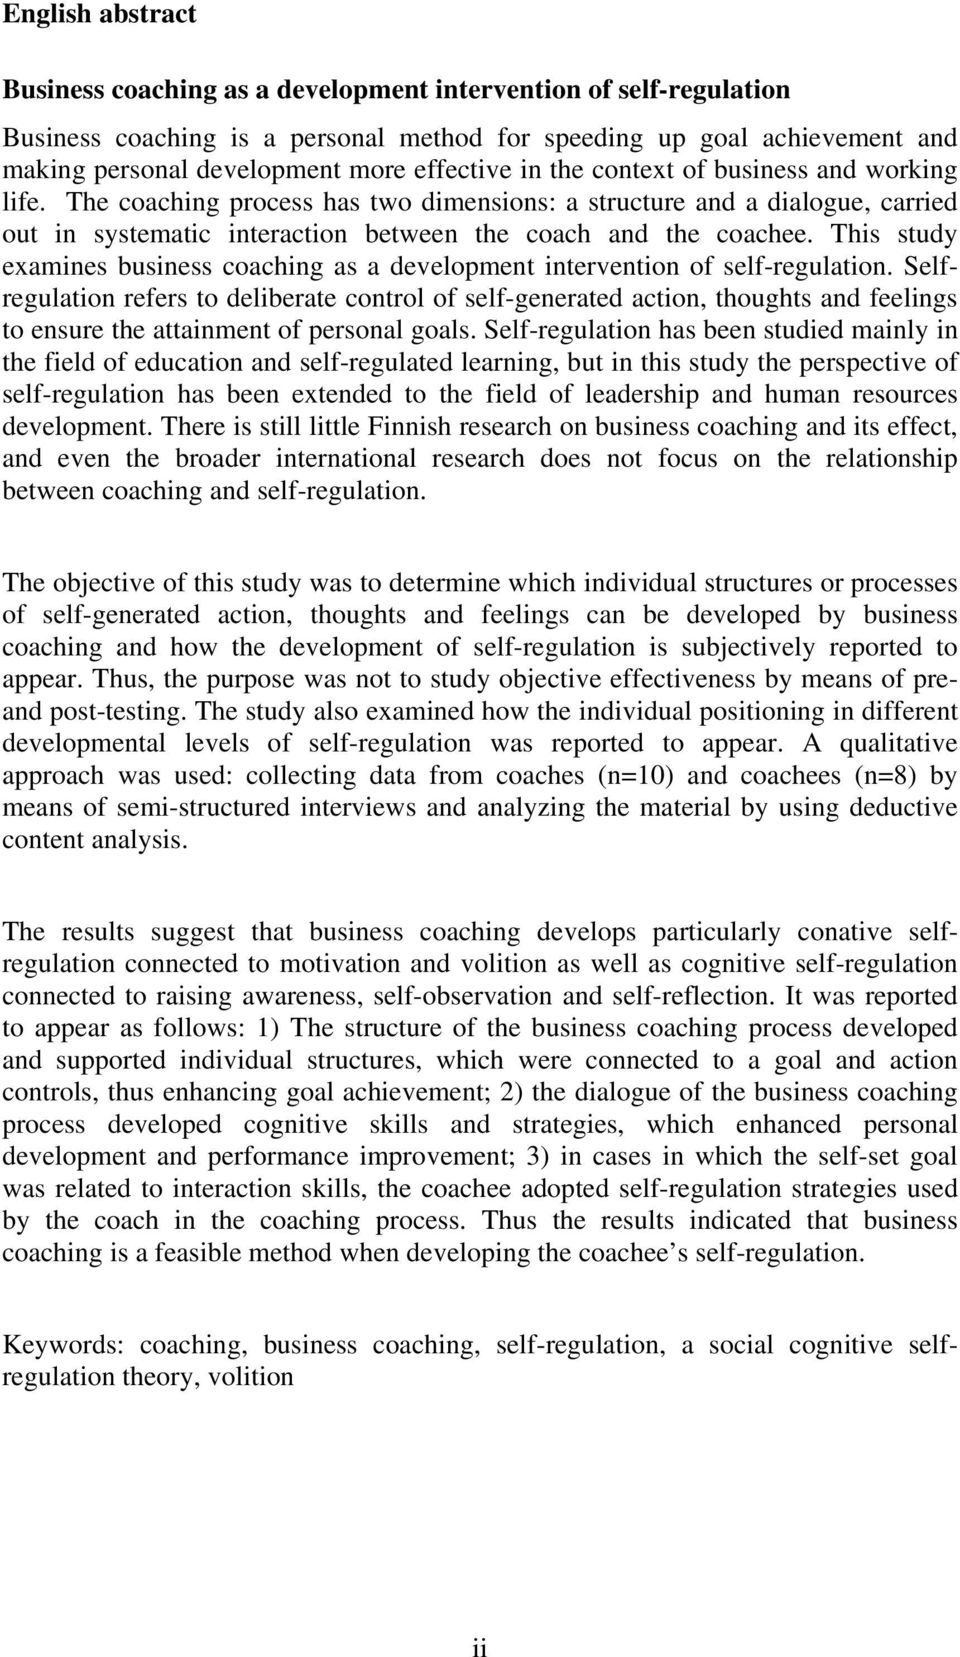 This study examines business caching as a develpment interventin f self-regulatin.